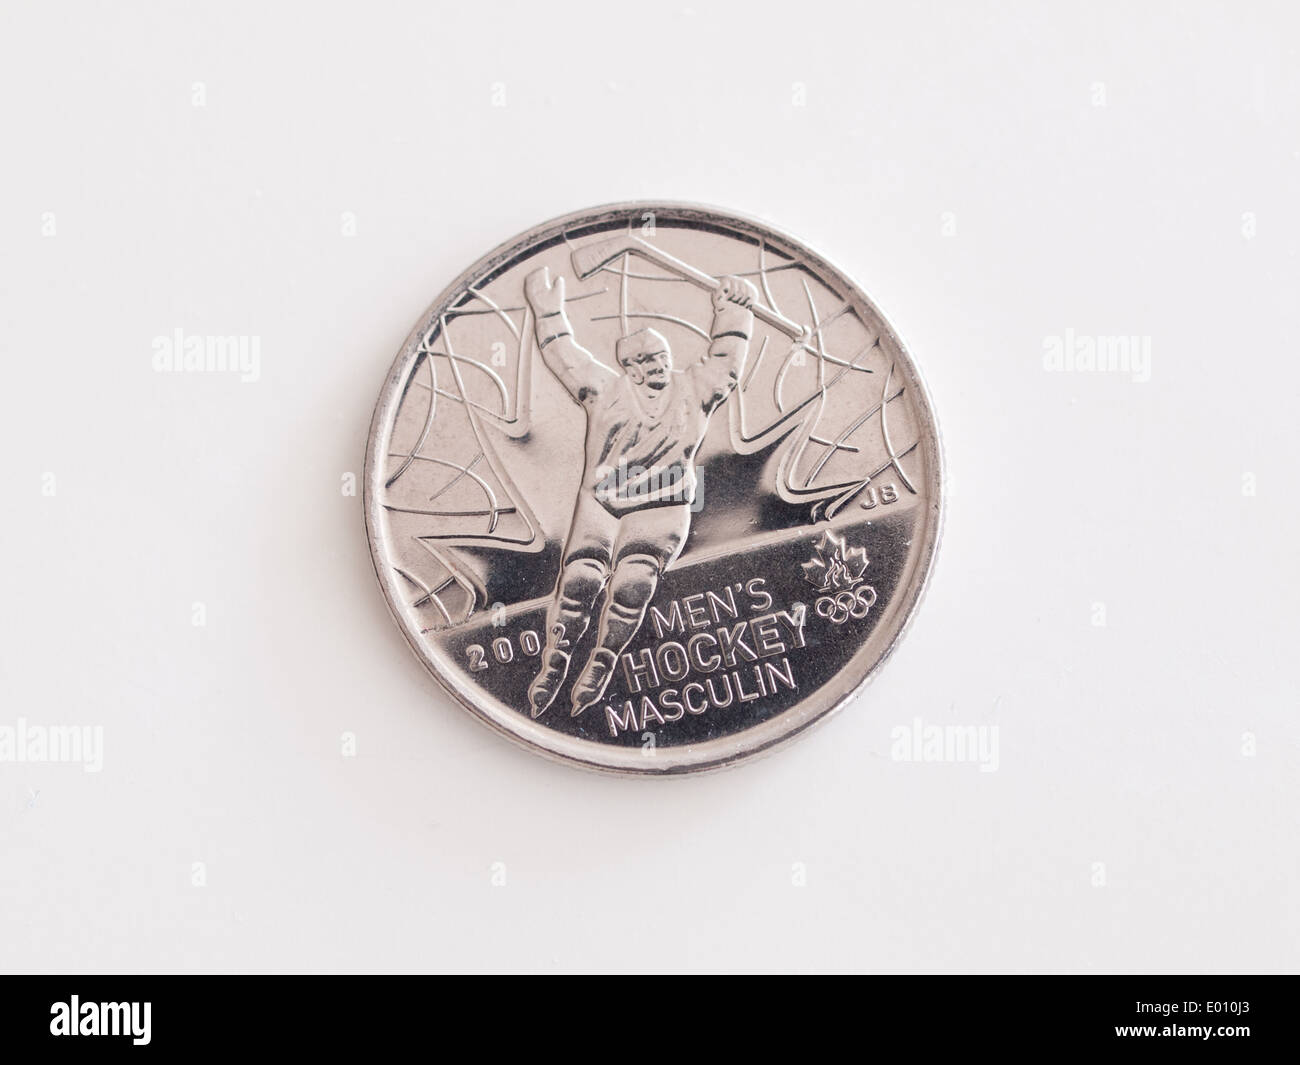 A Canadian quarter (25-cent coin) depicted Canada's 2002 Olympic gold in Men's Hockey. - Stock Image